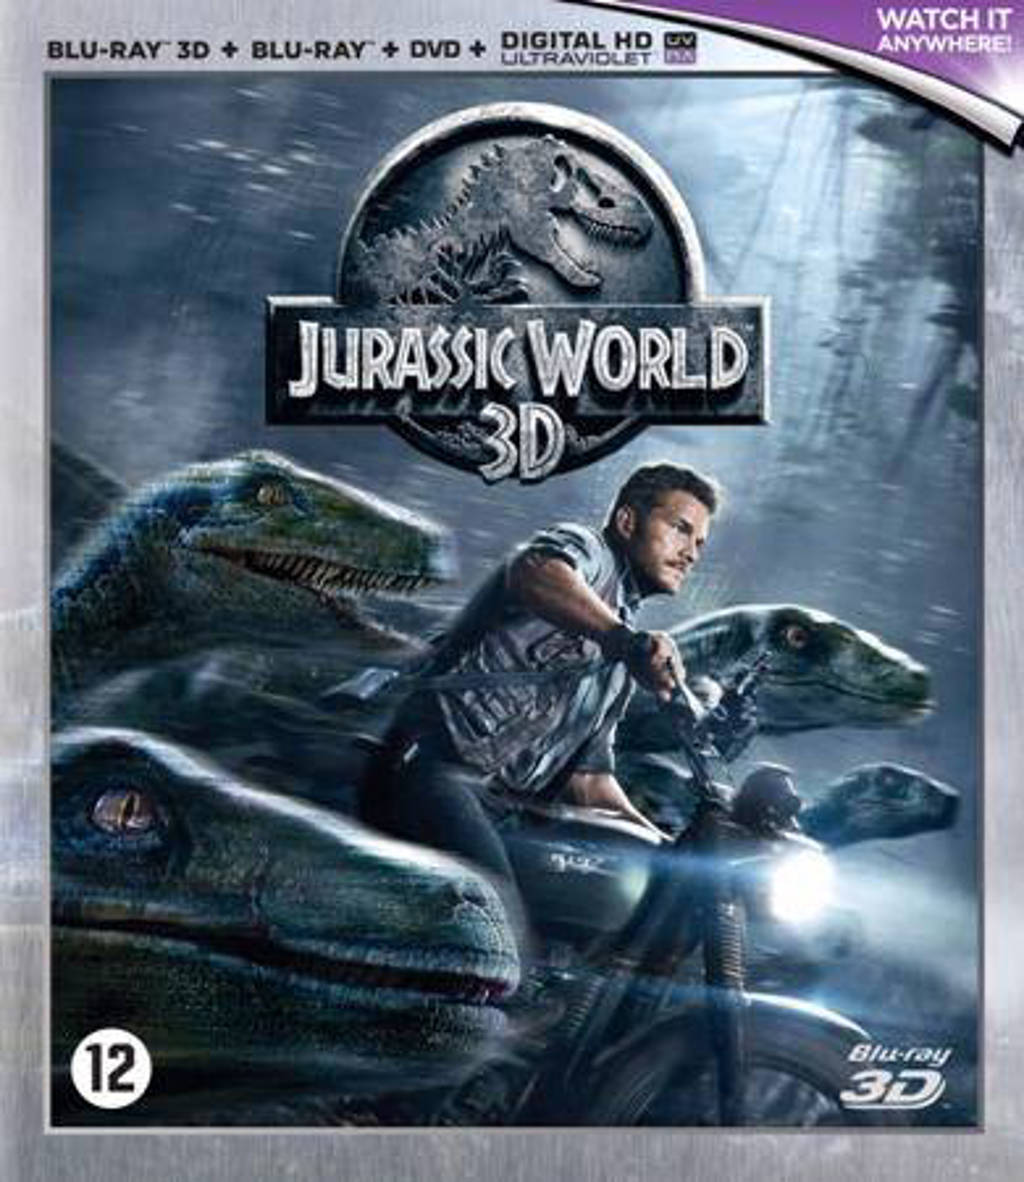 Jurassic world (3D) (Blu-ray)